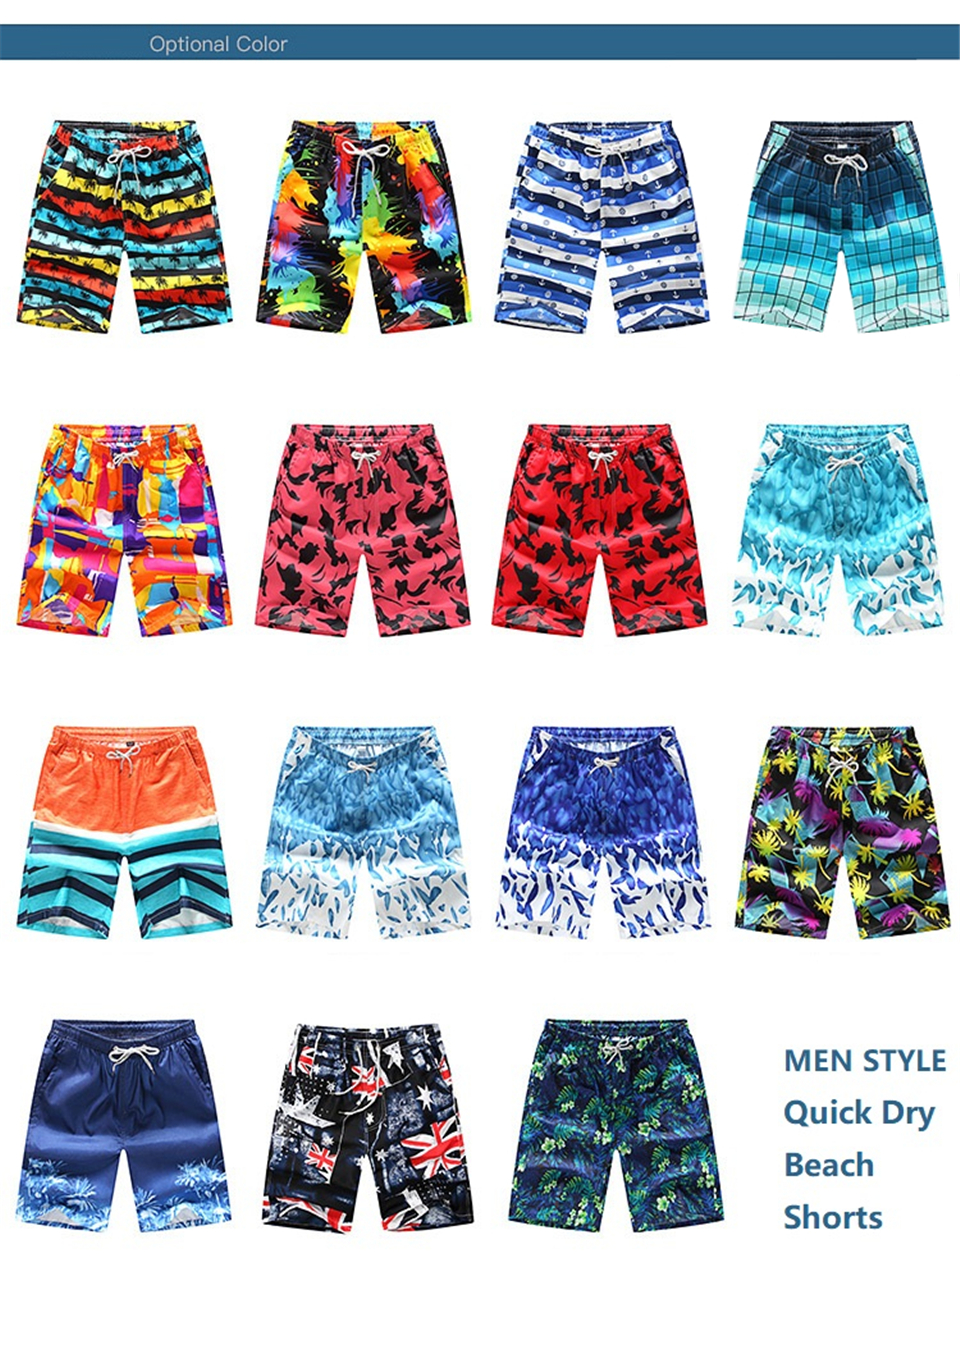 Beach Shorts Men Trunk Summer Short Pants Print Breathable Quick Dry Swim Shorts M-4XL Plus Size Mens Shorts Summer Swim Trunks